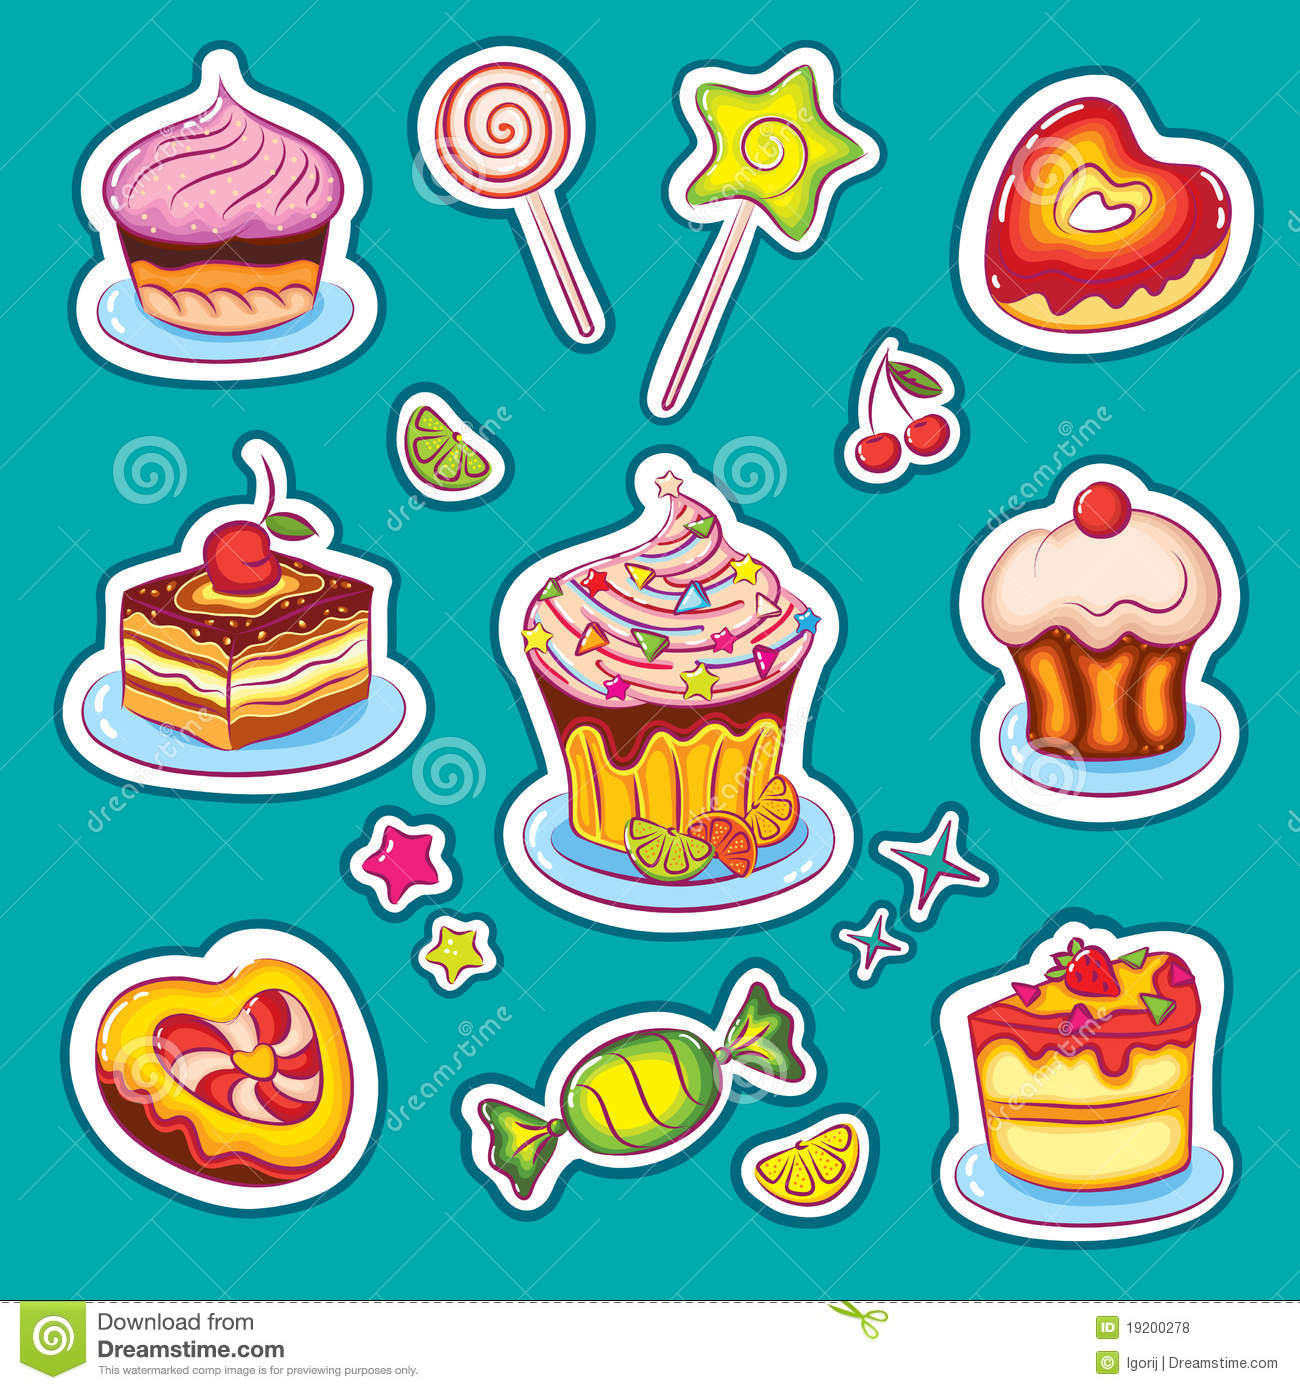 Cake Images Sweets : Sweets And Cakes Stickers Royalty Free Stock Photos ...